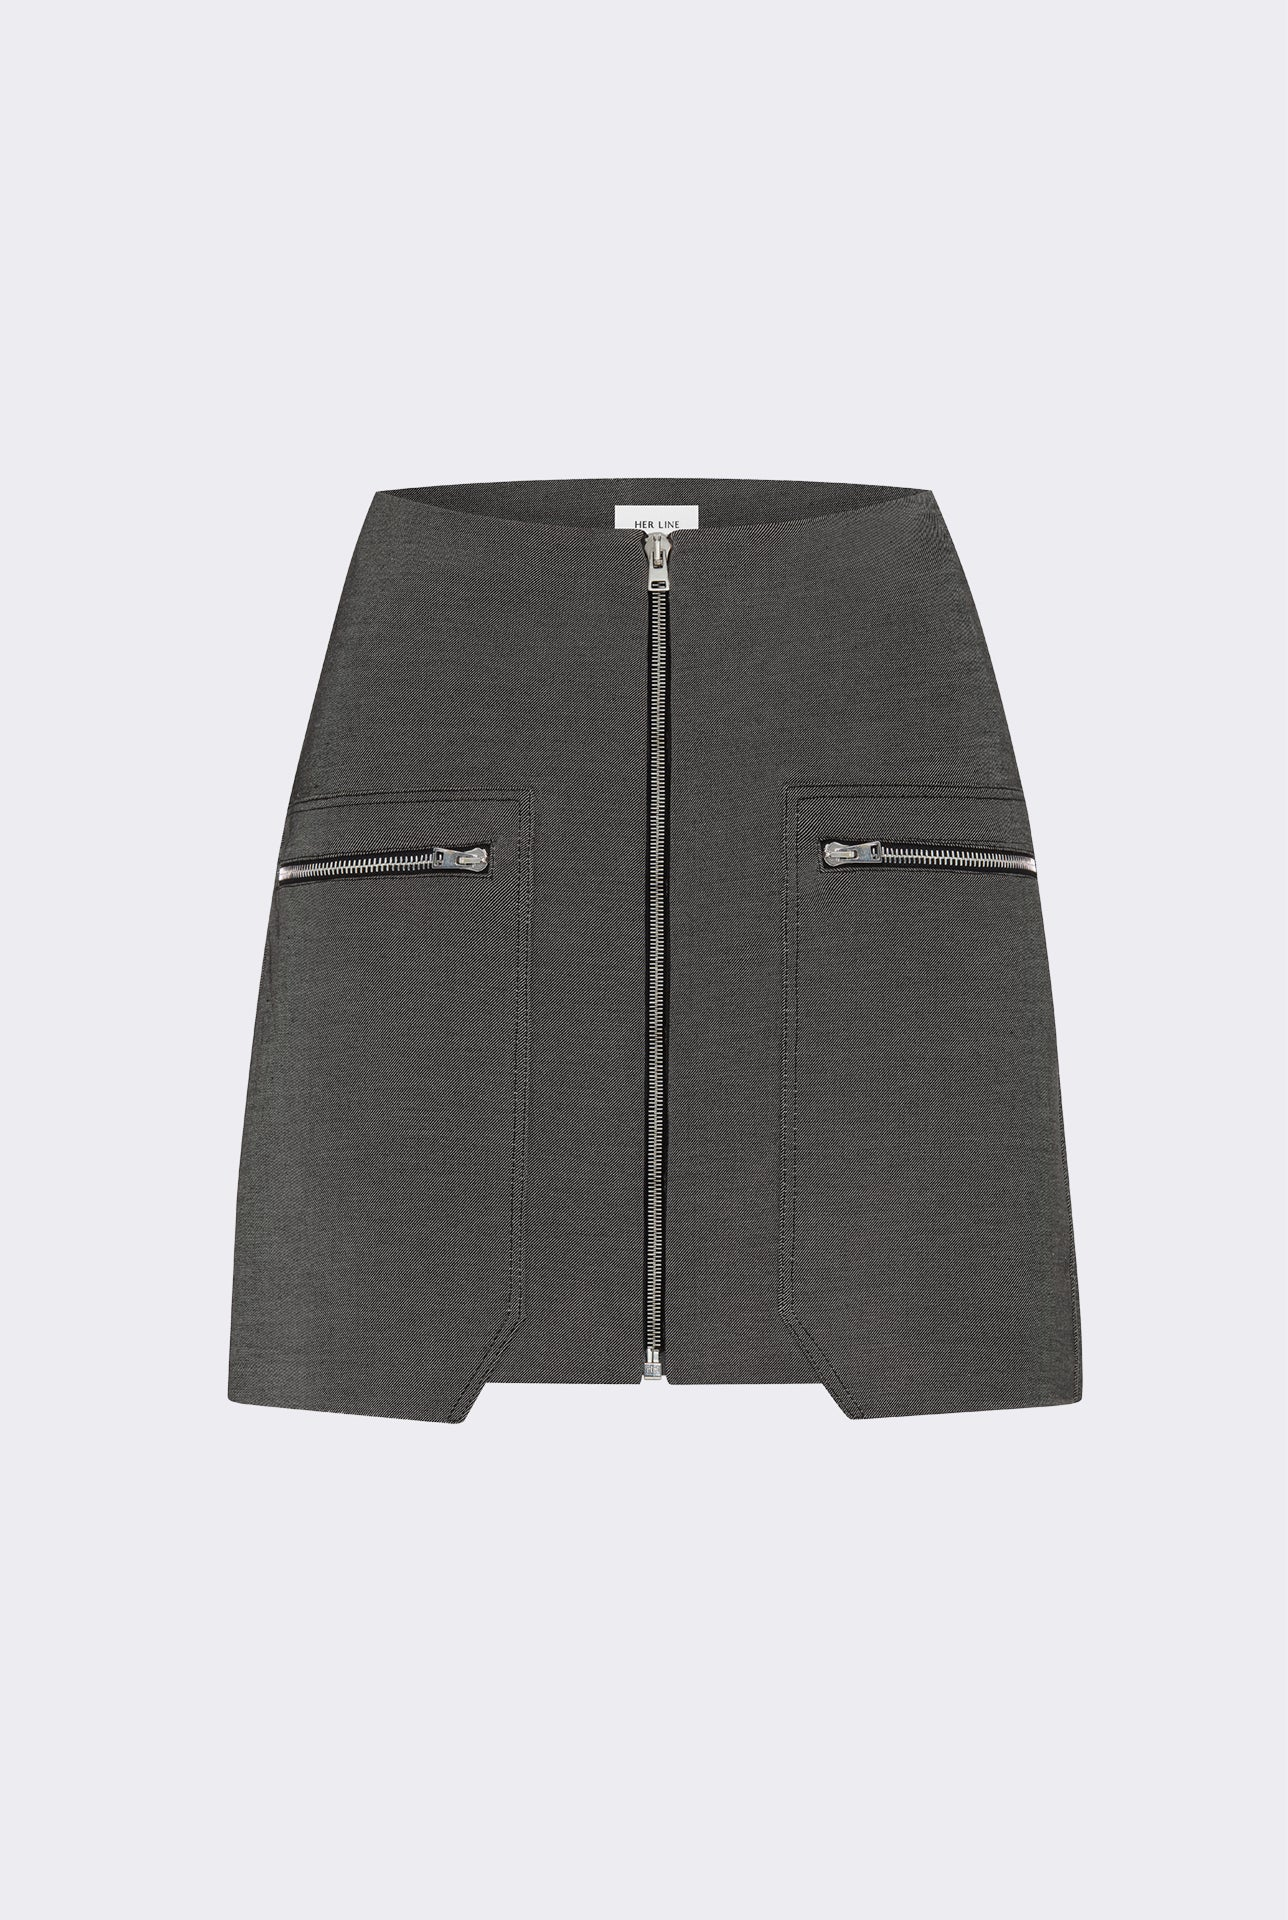 Patched zip mini skirt - Double-faced cotton twill - Grey - Resortwear skirt - Her Line